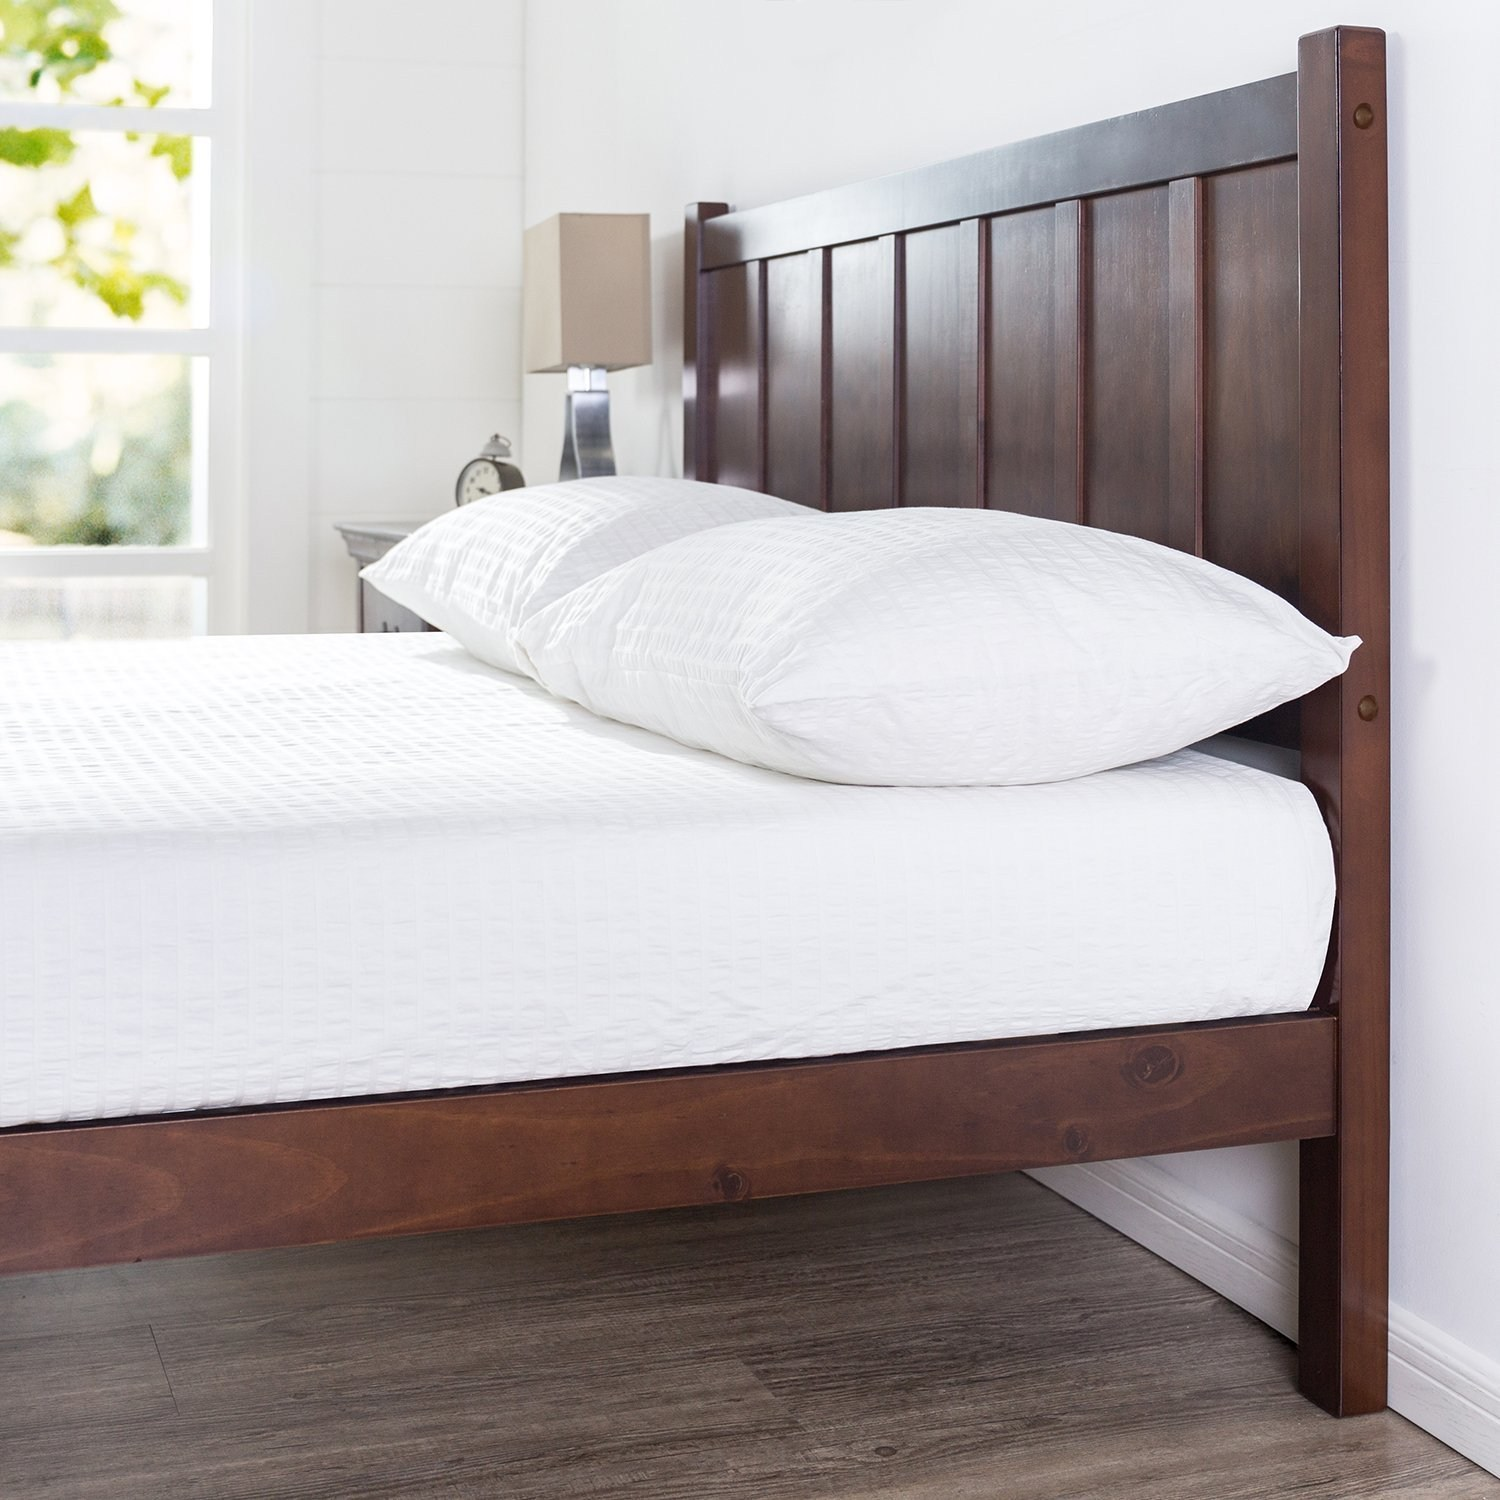 Wood Rustic Style Platform Bed With Headboard No Box